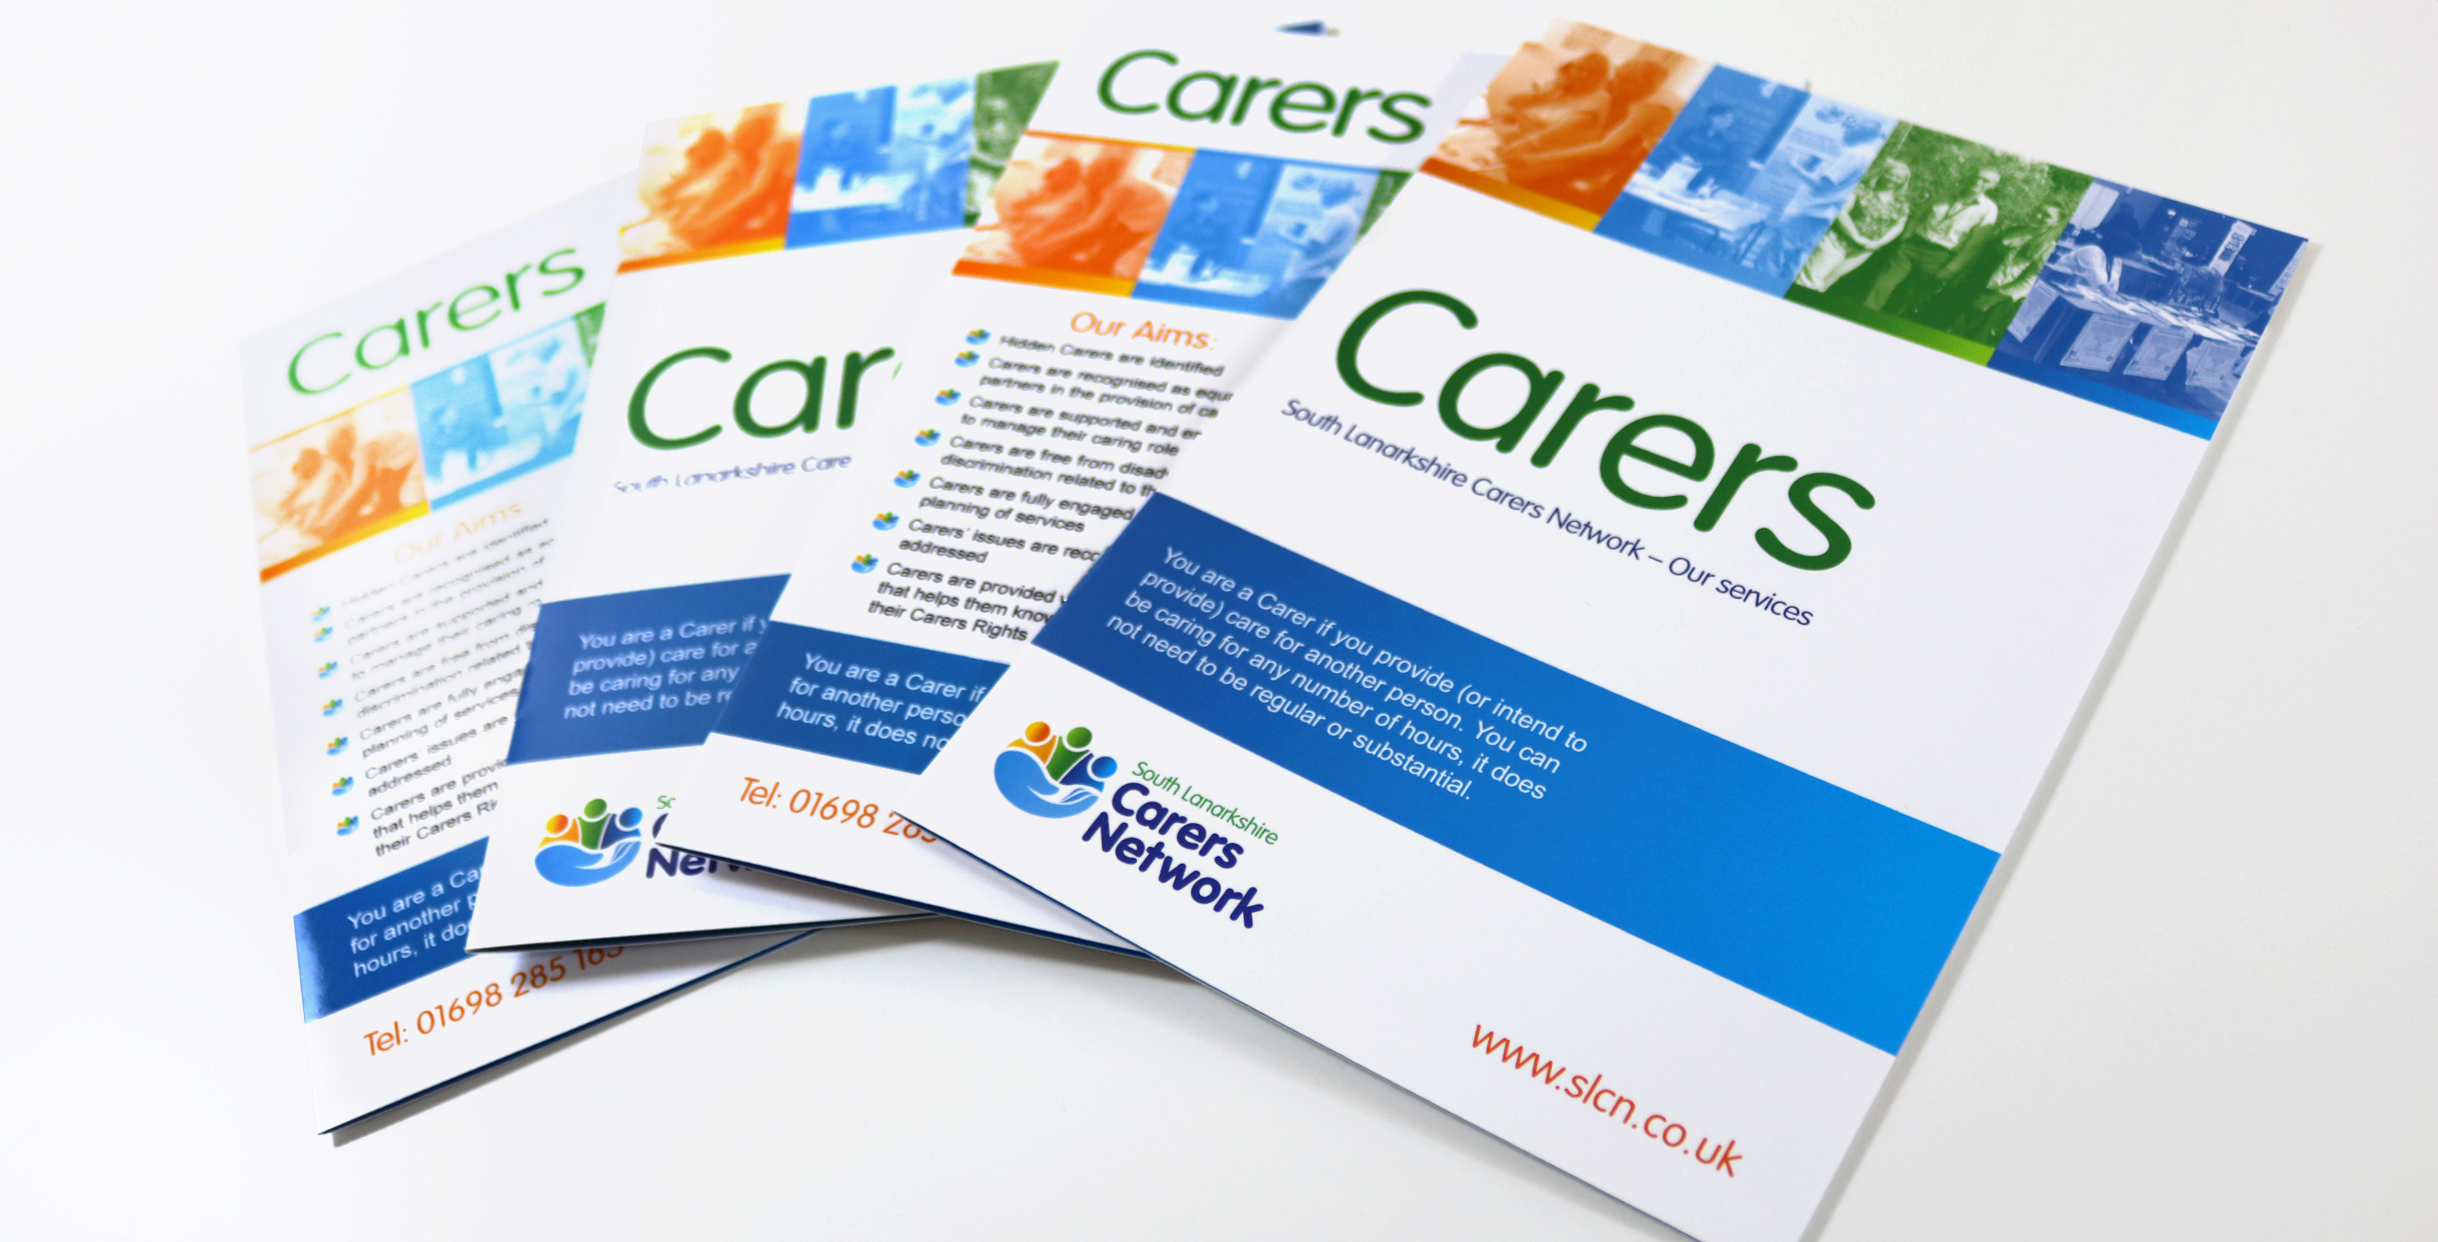 Carers Book for South Lanarkshire Carers Network. Information marketing material